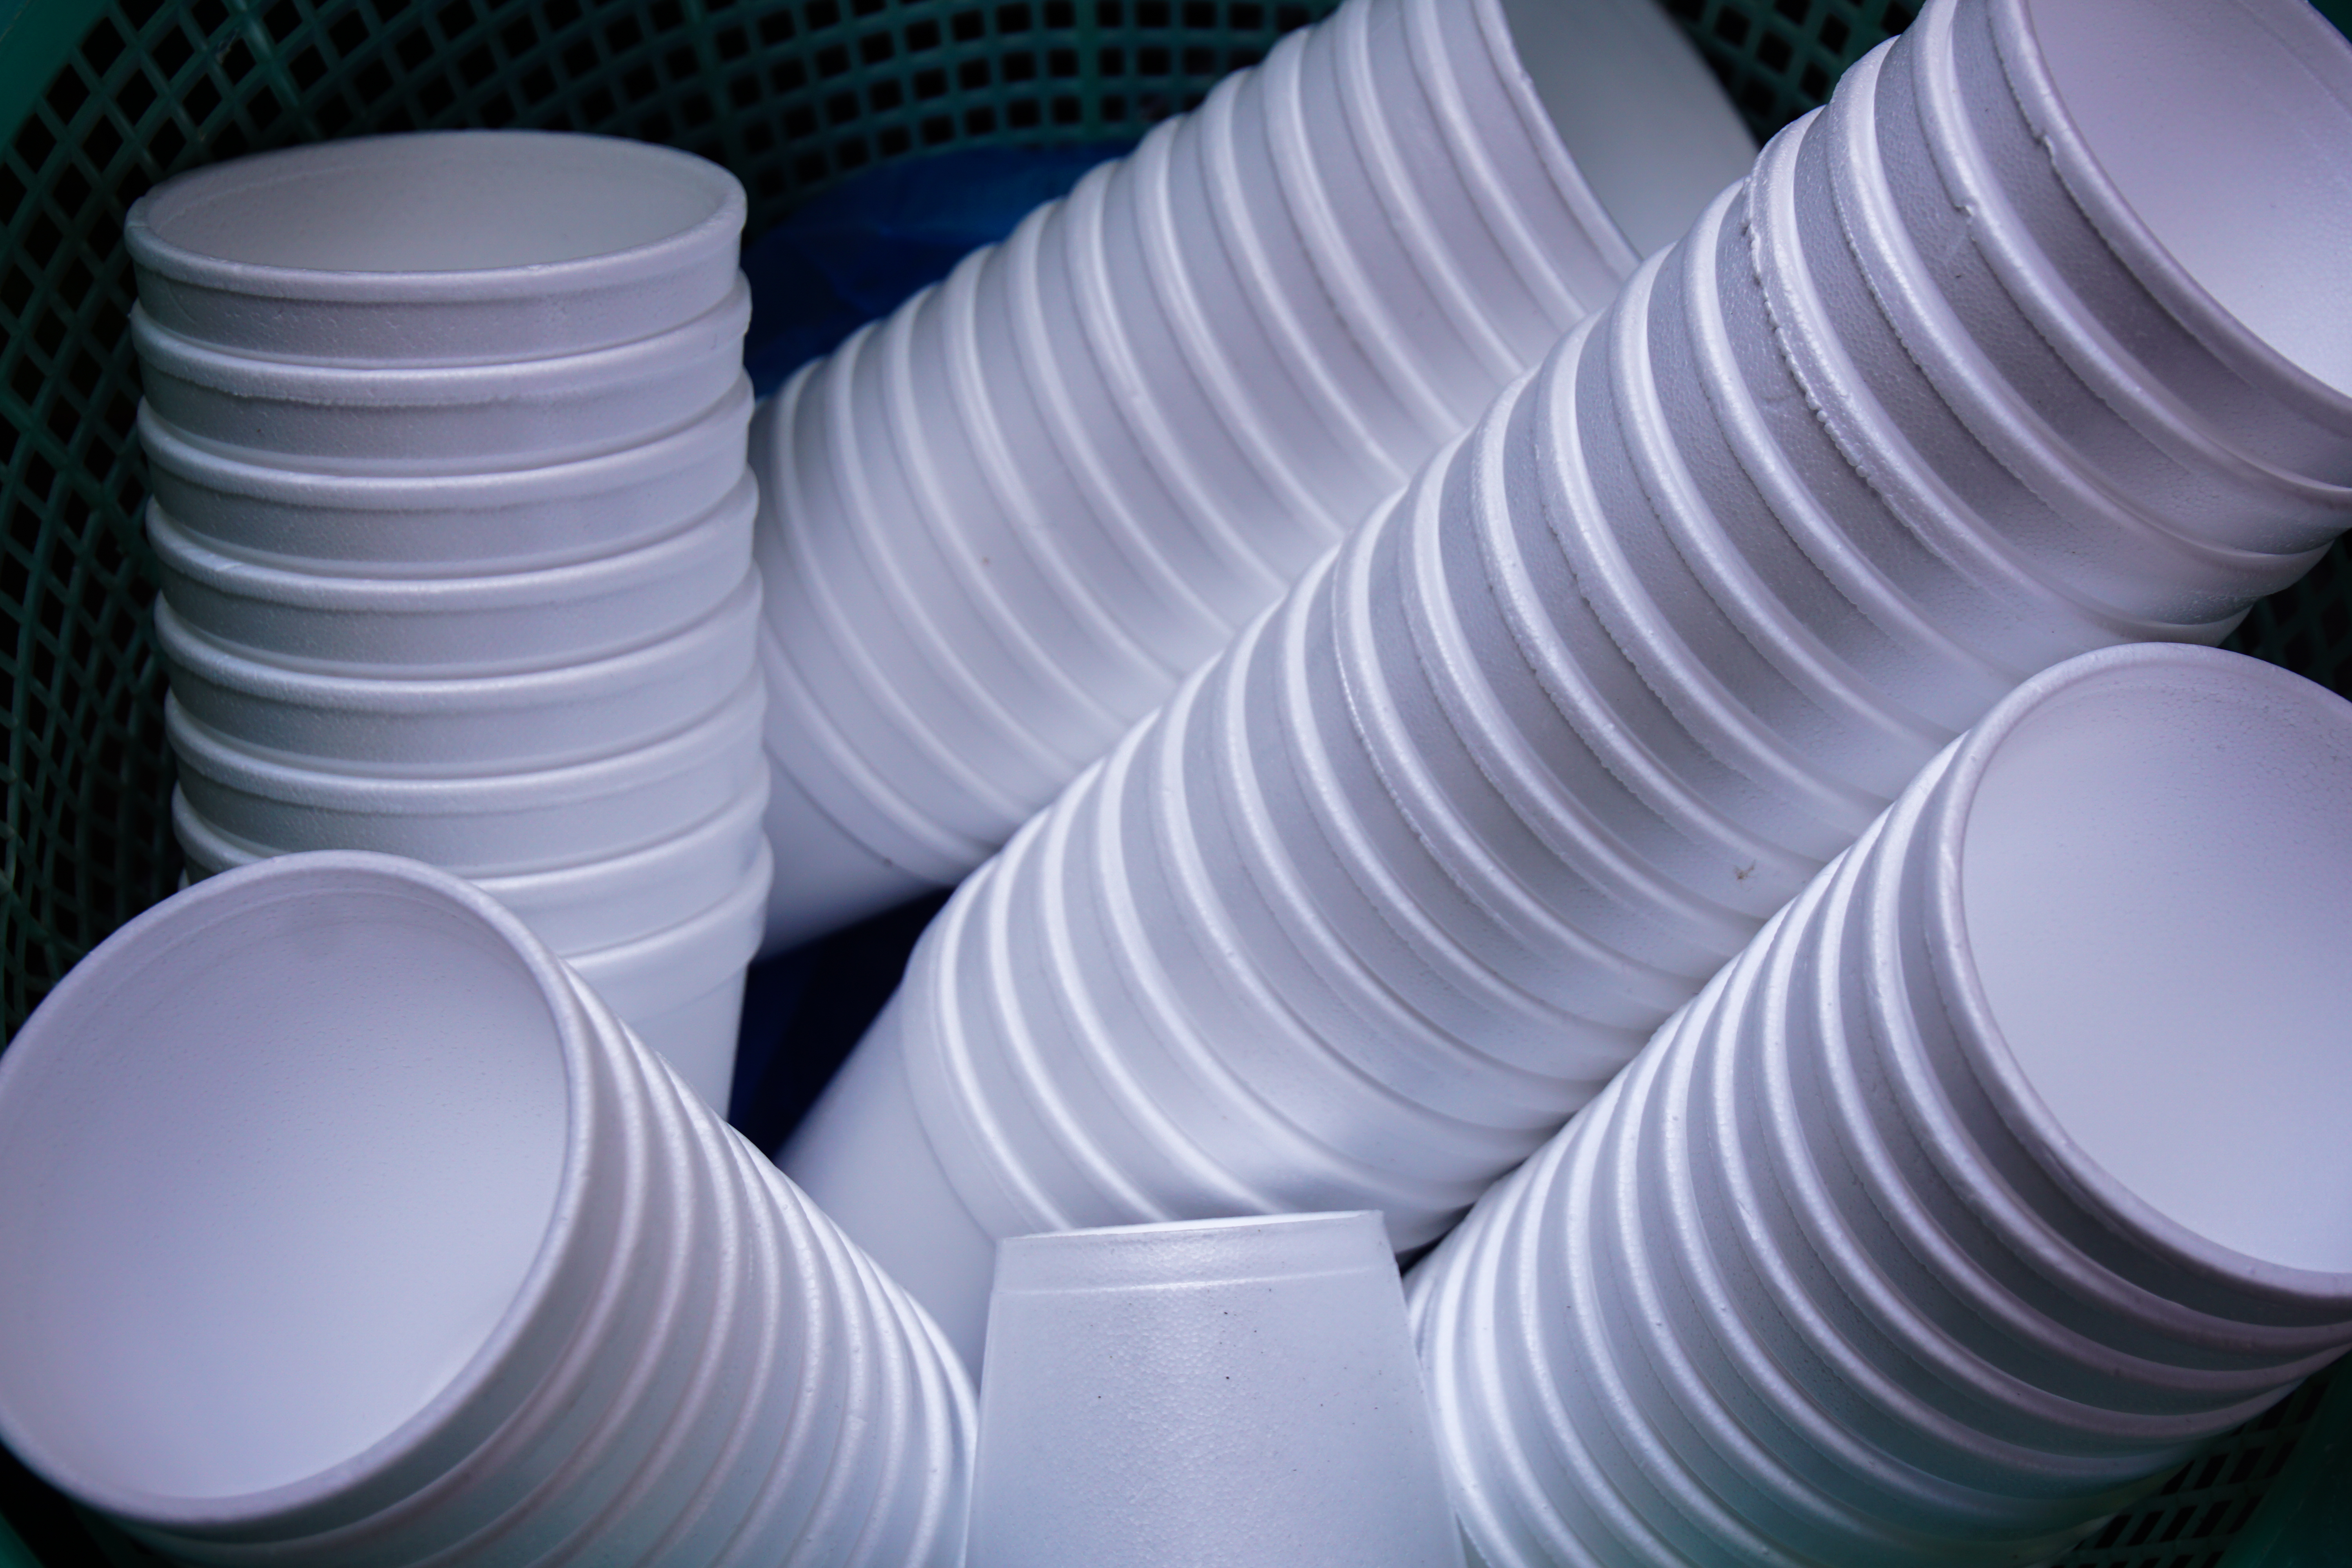 Pros & Cons of Styrofoam